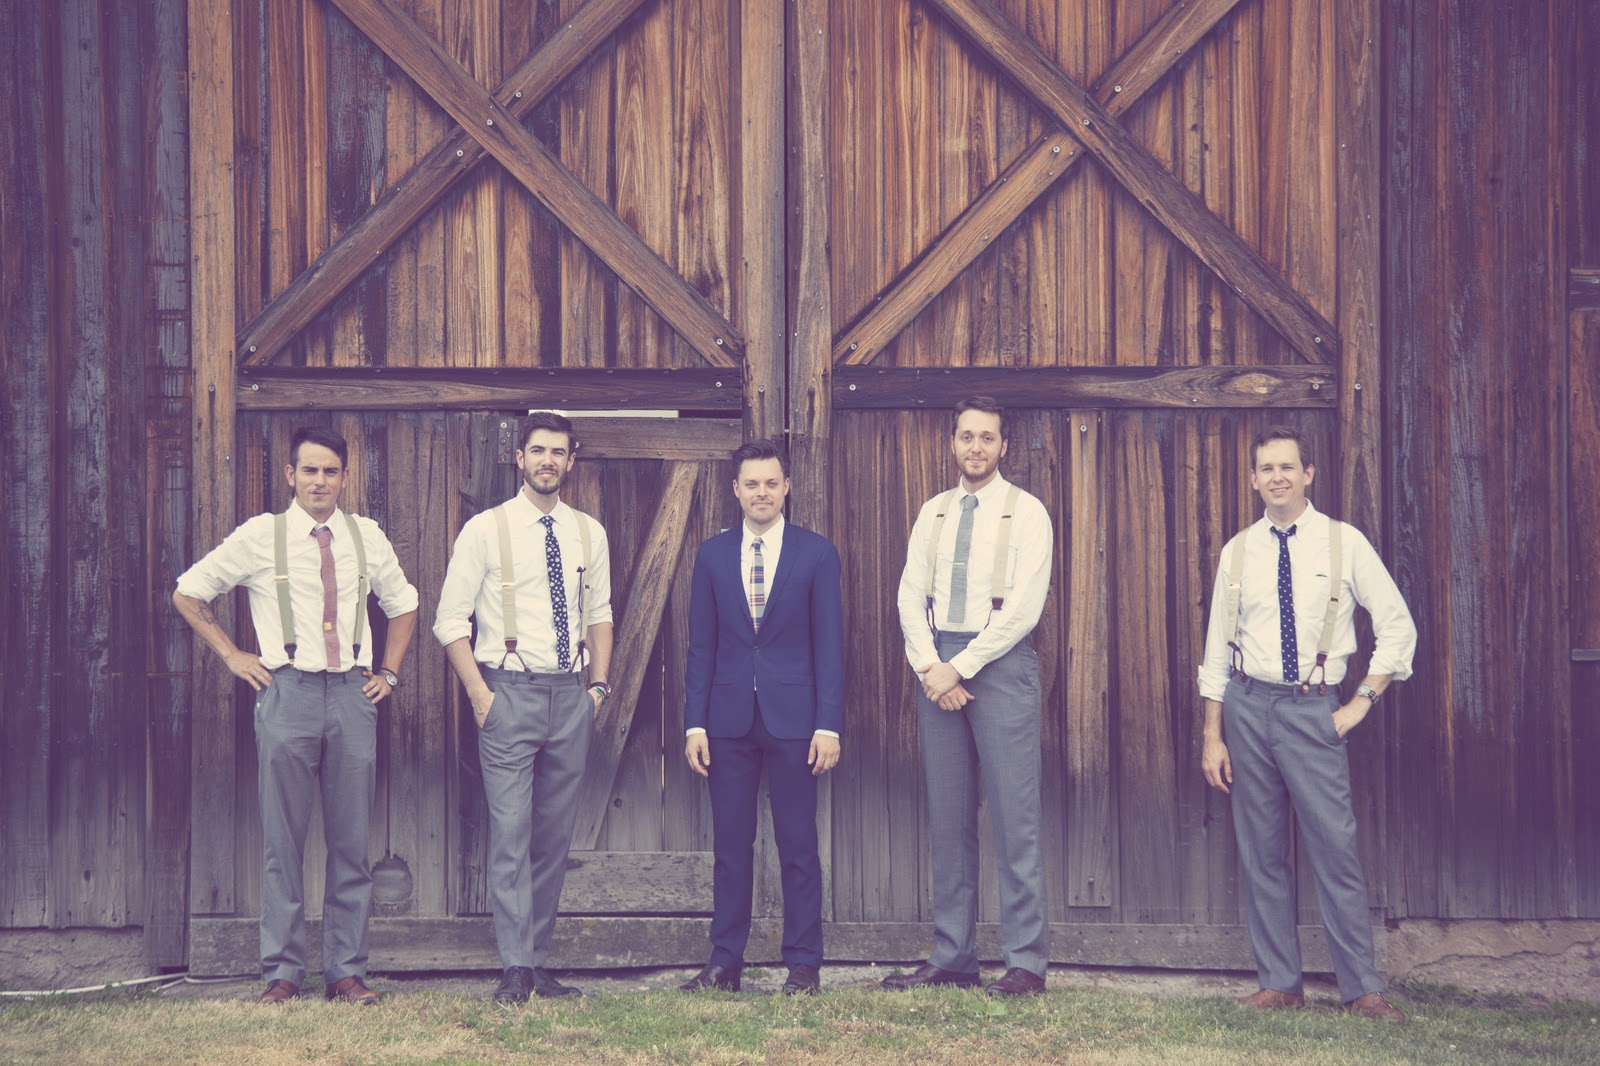 Mix-and-match-groomsmen-with-groom-rustic-outdoor-wedding.original